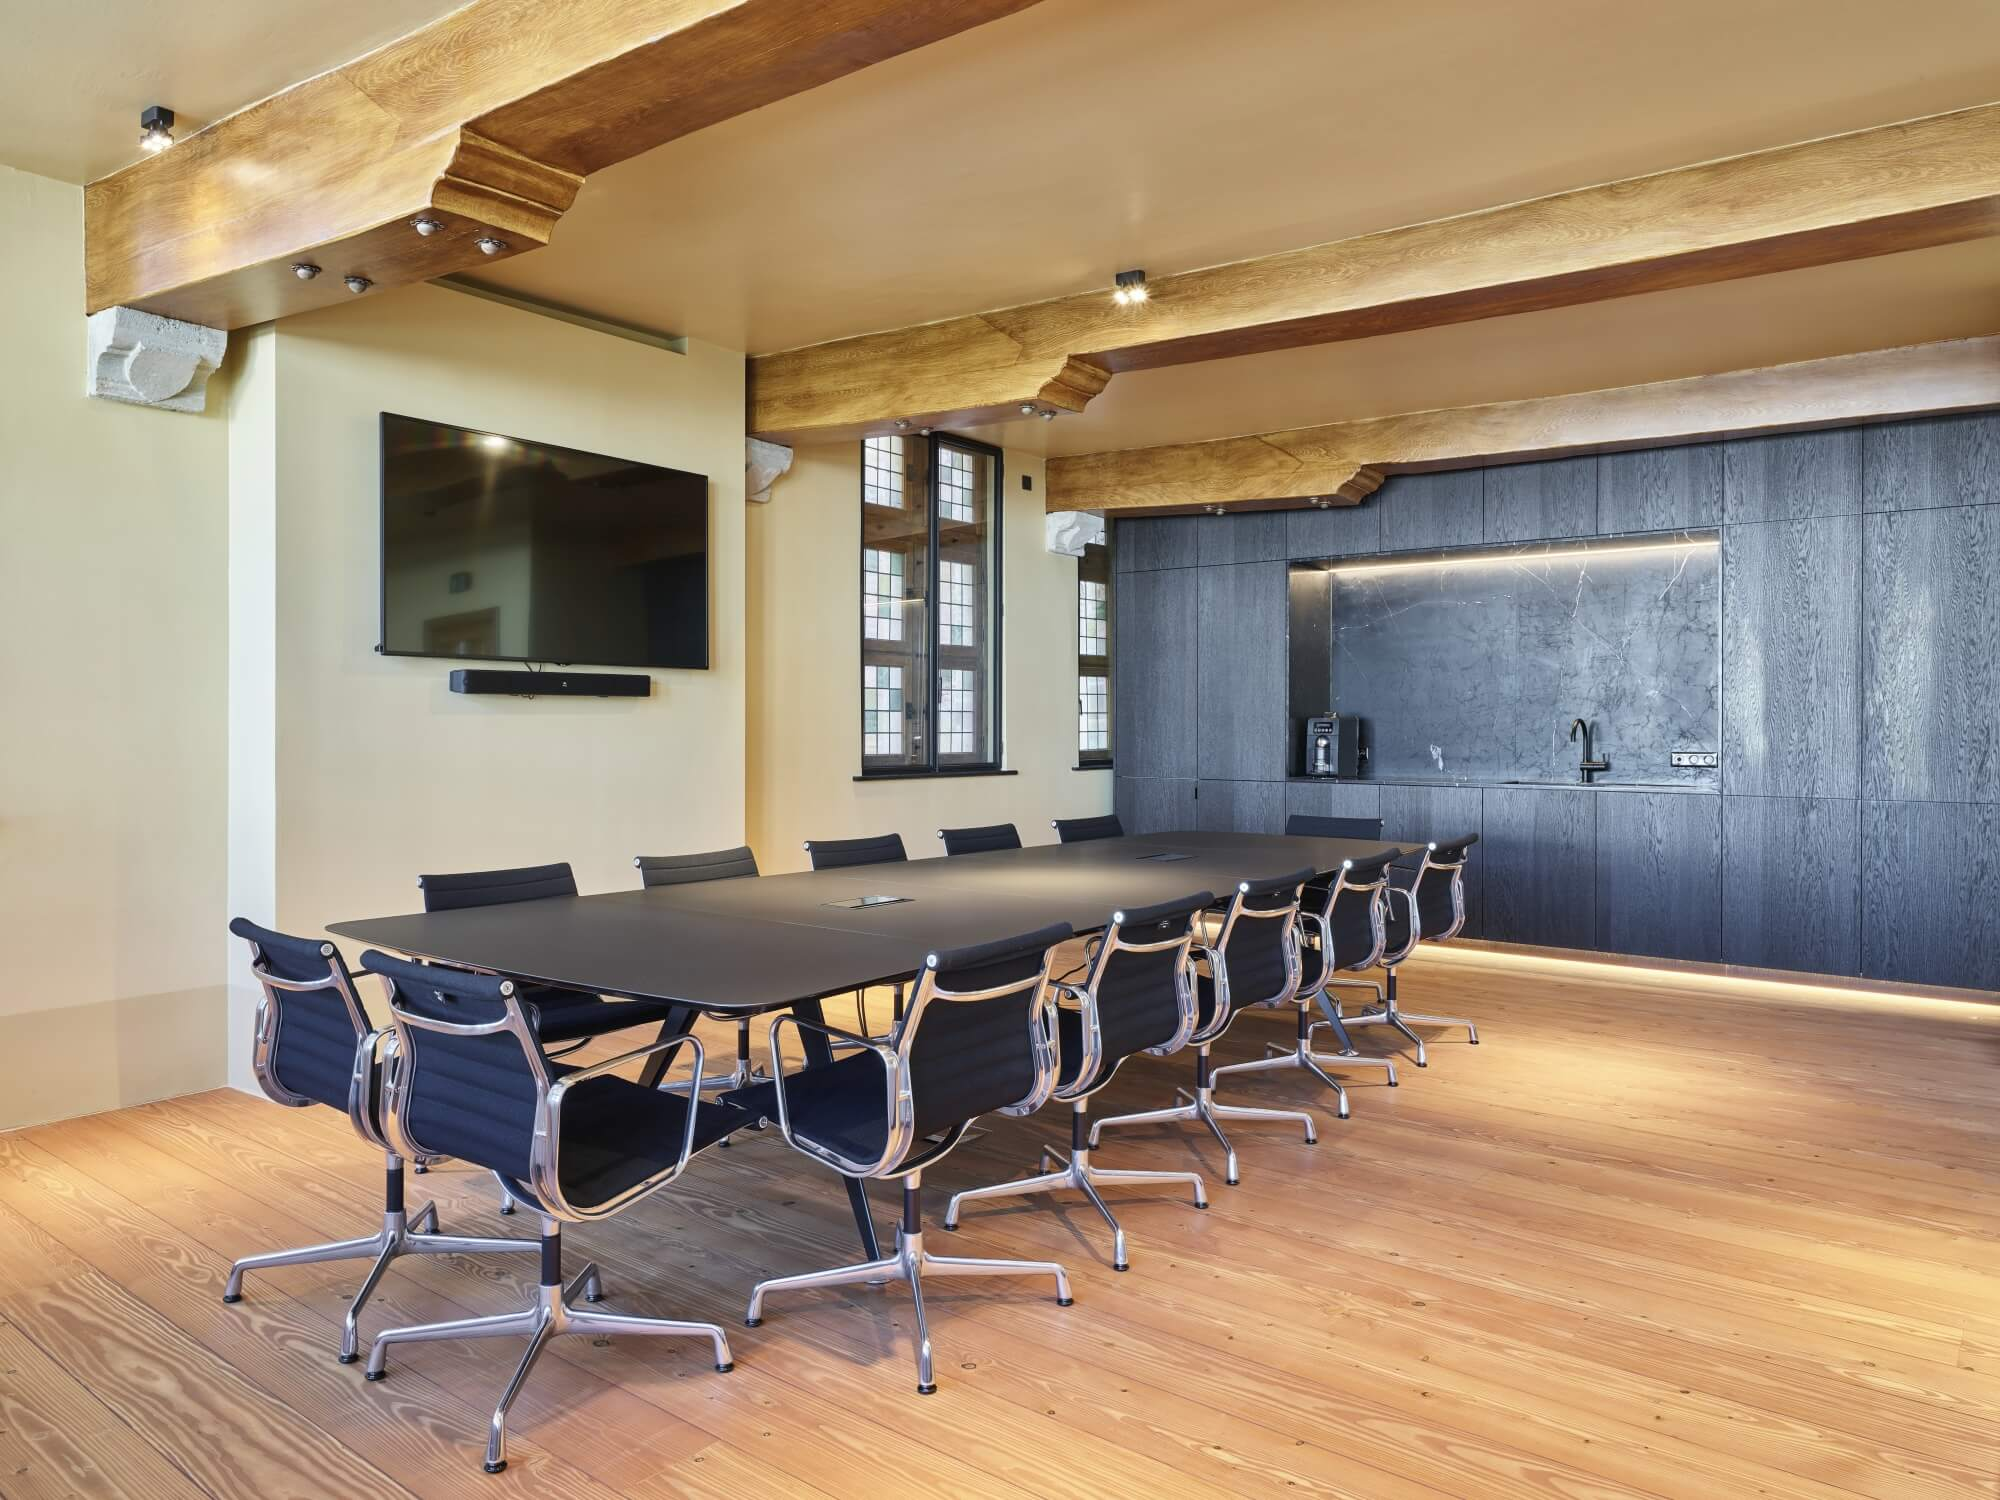 Office floors made from wood.